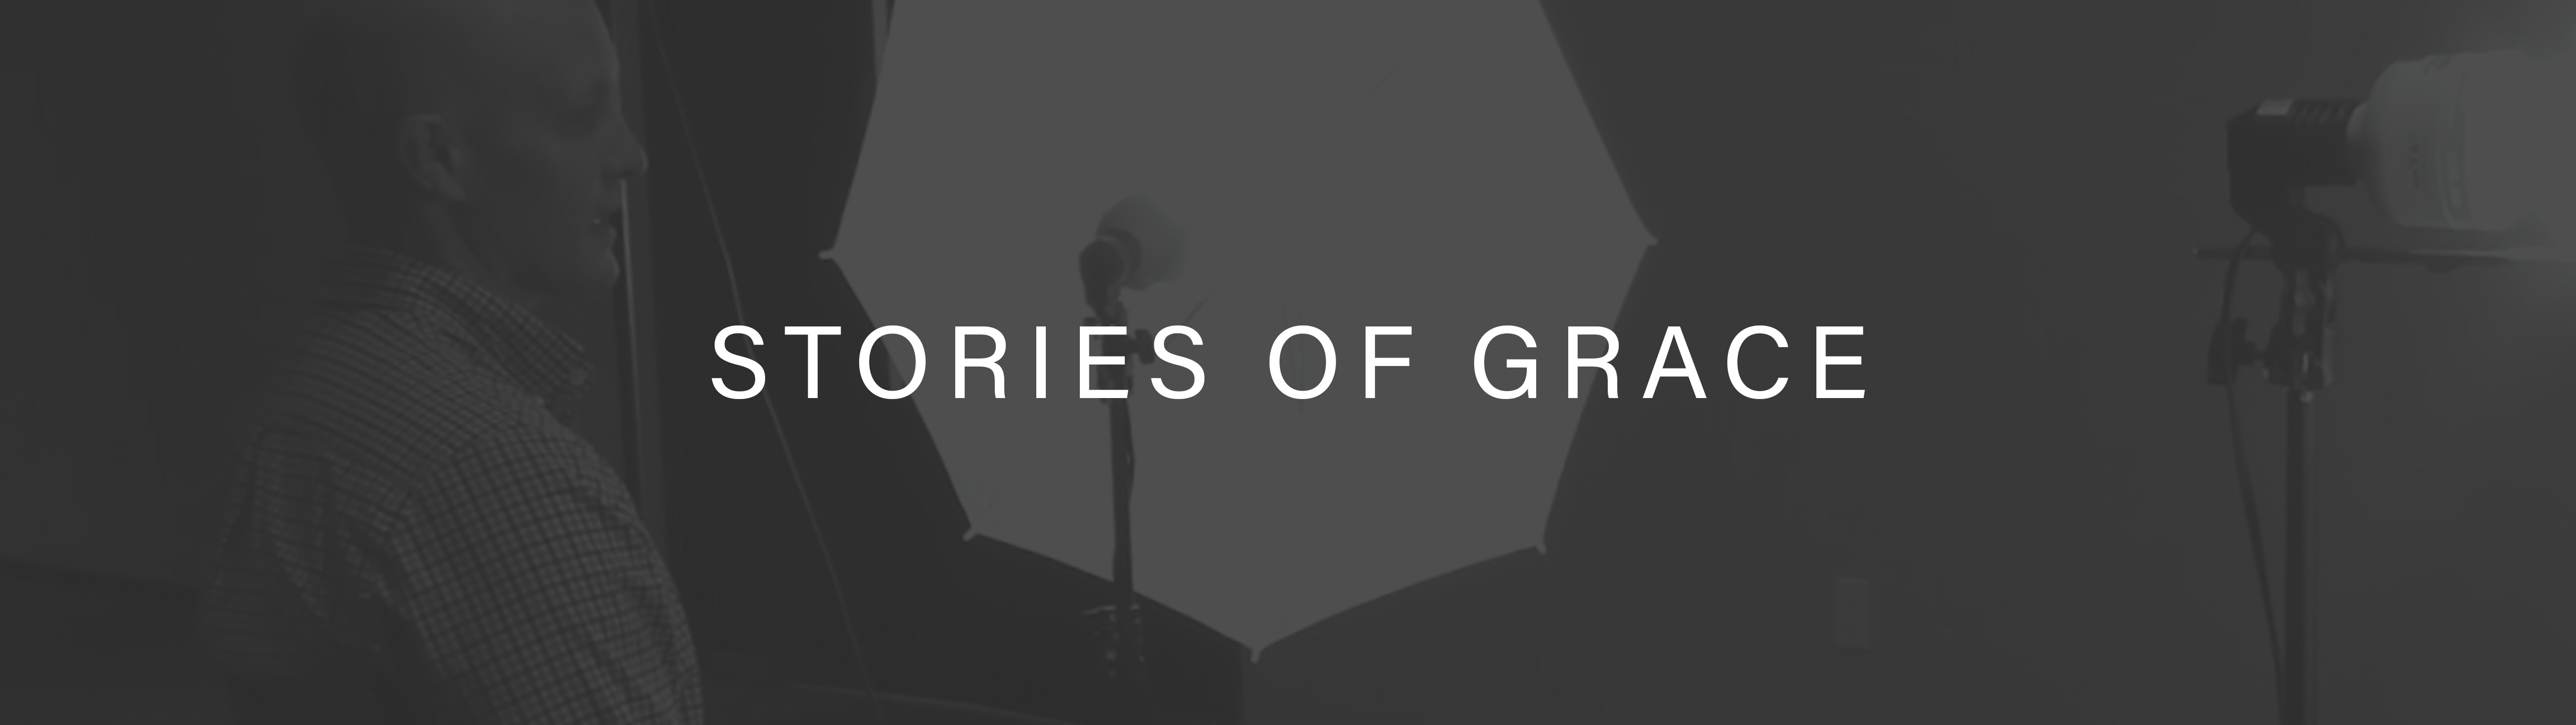 stories-of-grace